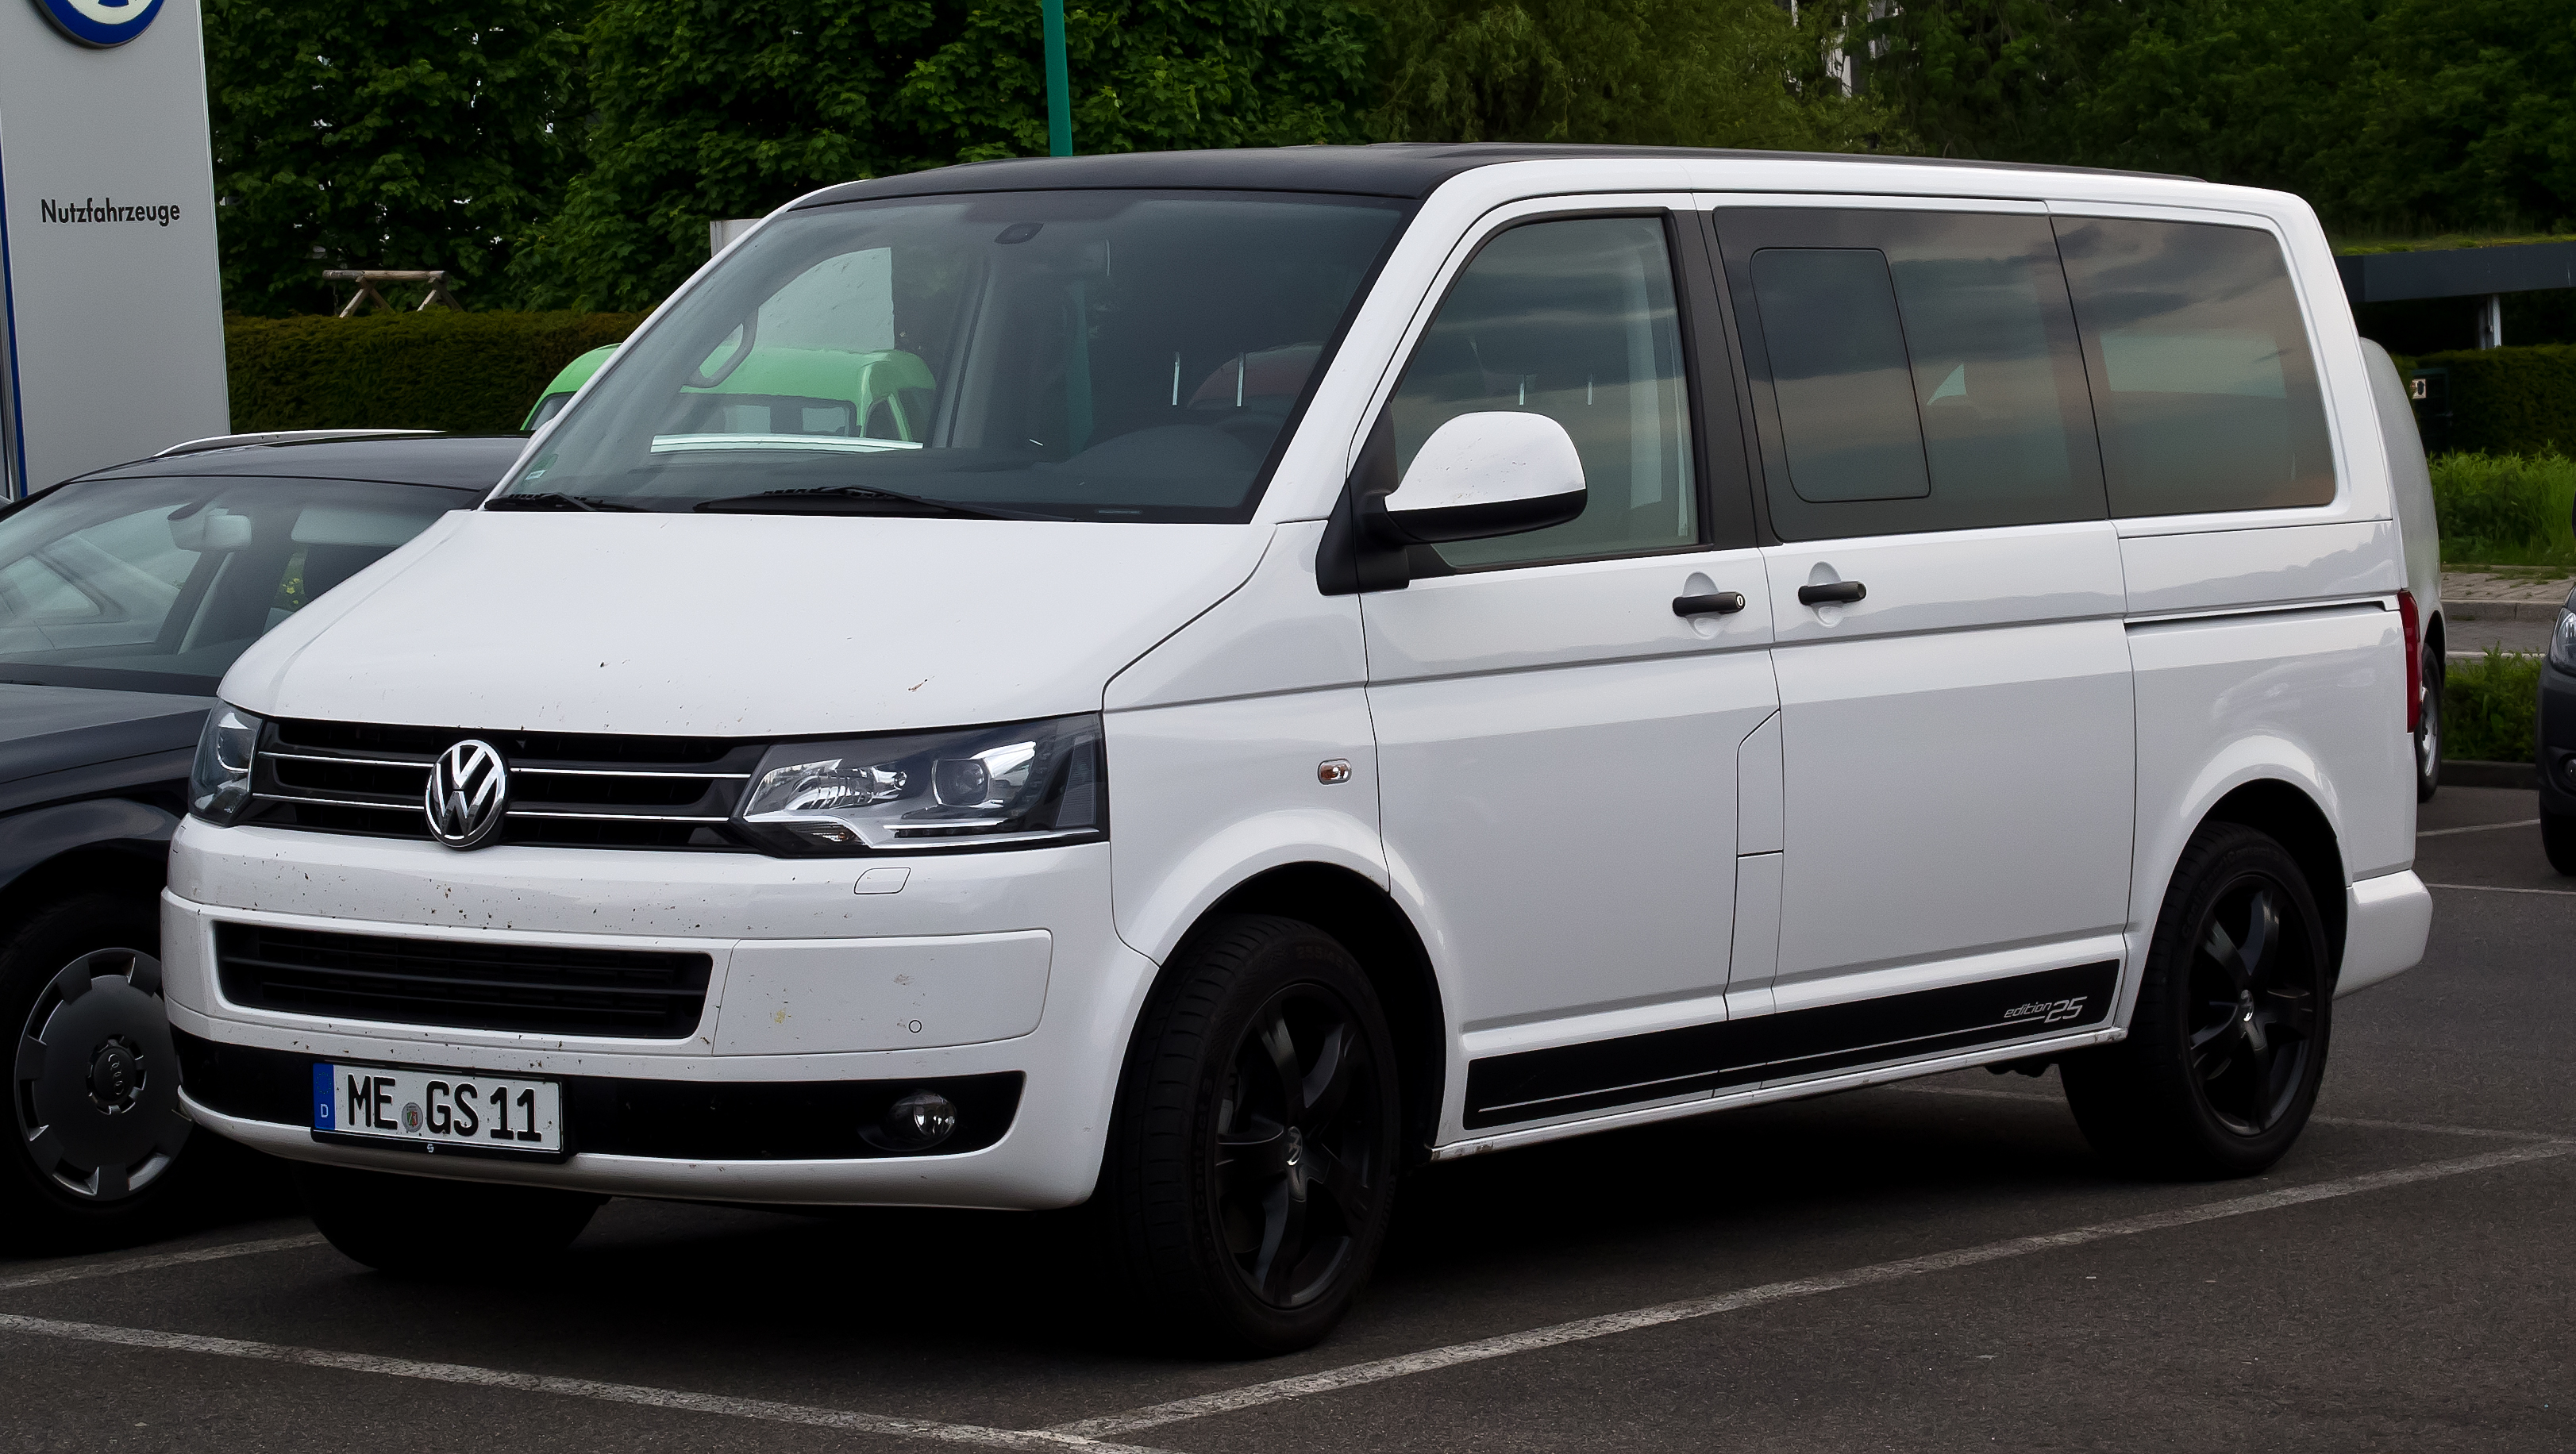 File:VW Multivan 2.0 TDI Edition 25 (T5, Facelift) – Frontansicht